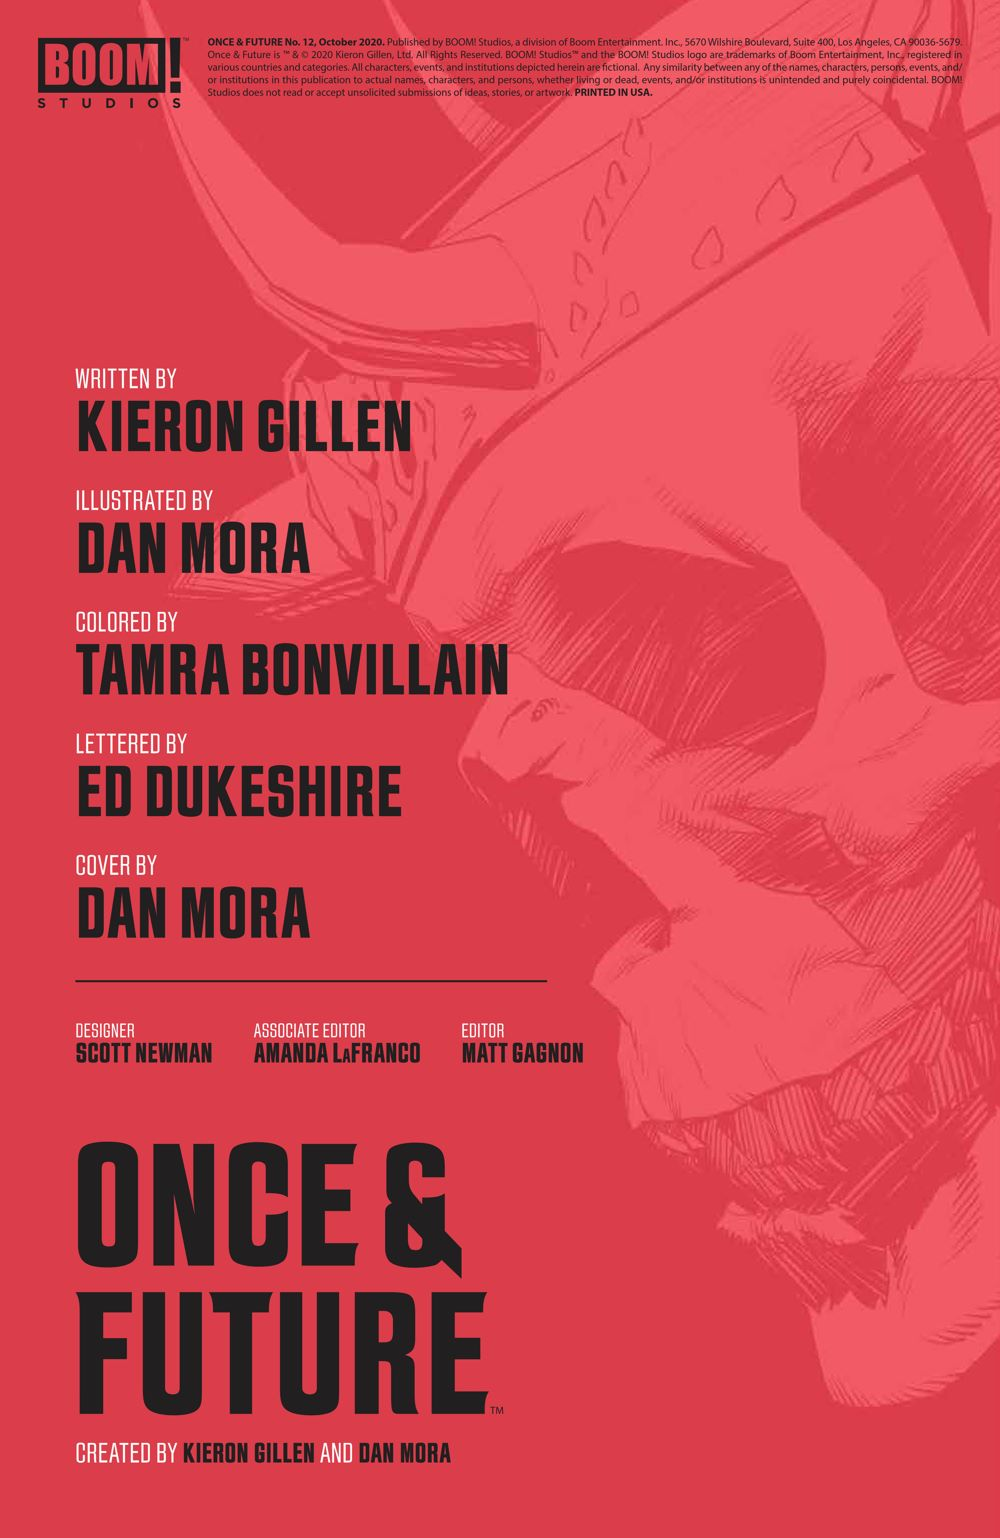 OnceFuture_012_PRESS_2 ComicList Previews: ONCE AND FUTURE #12